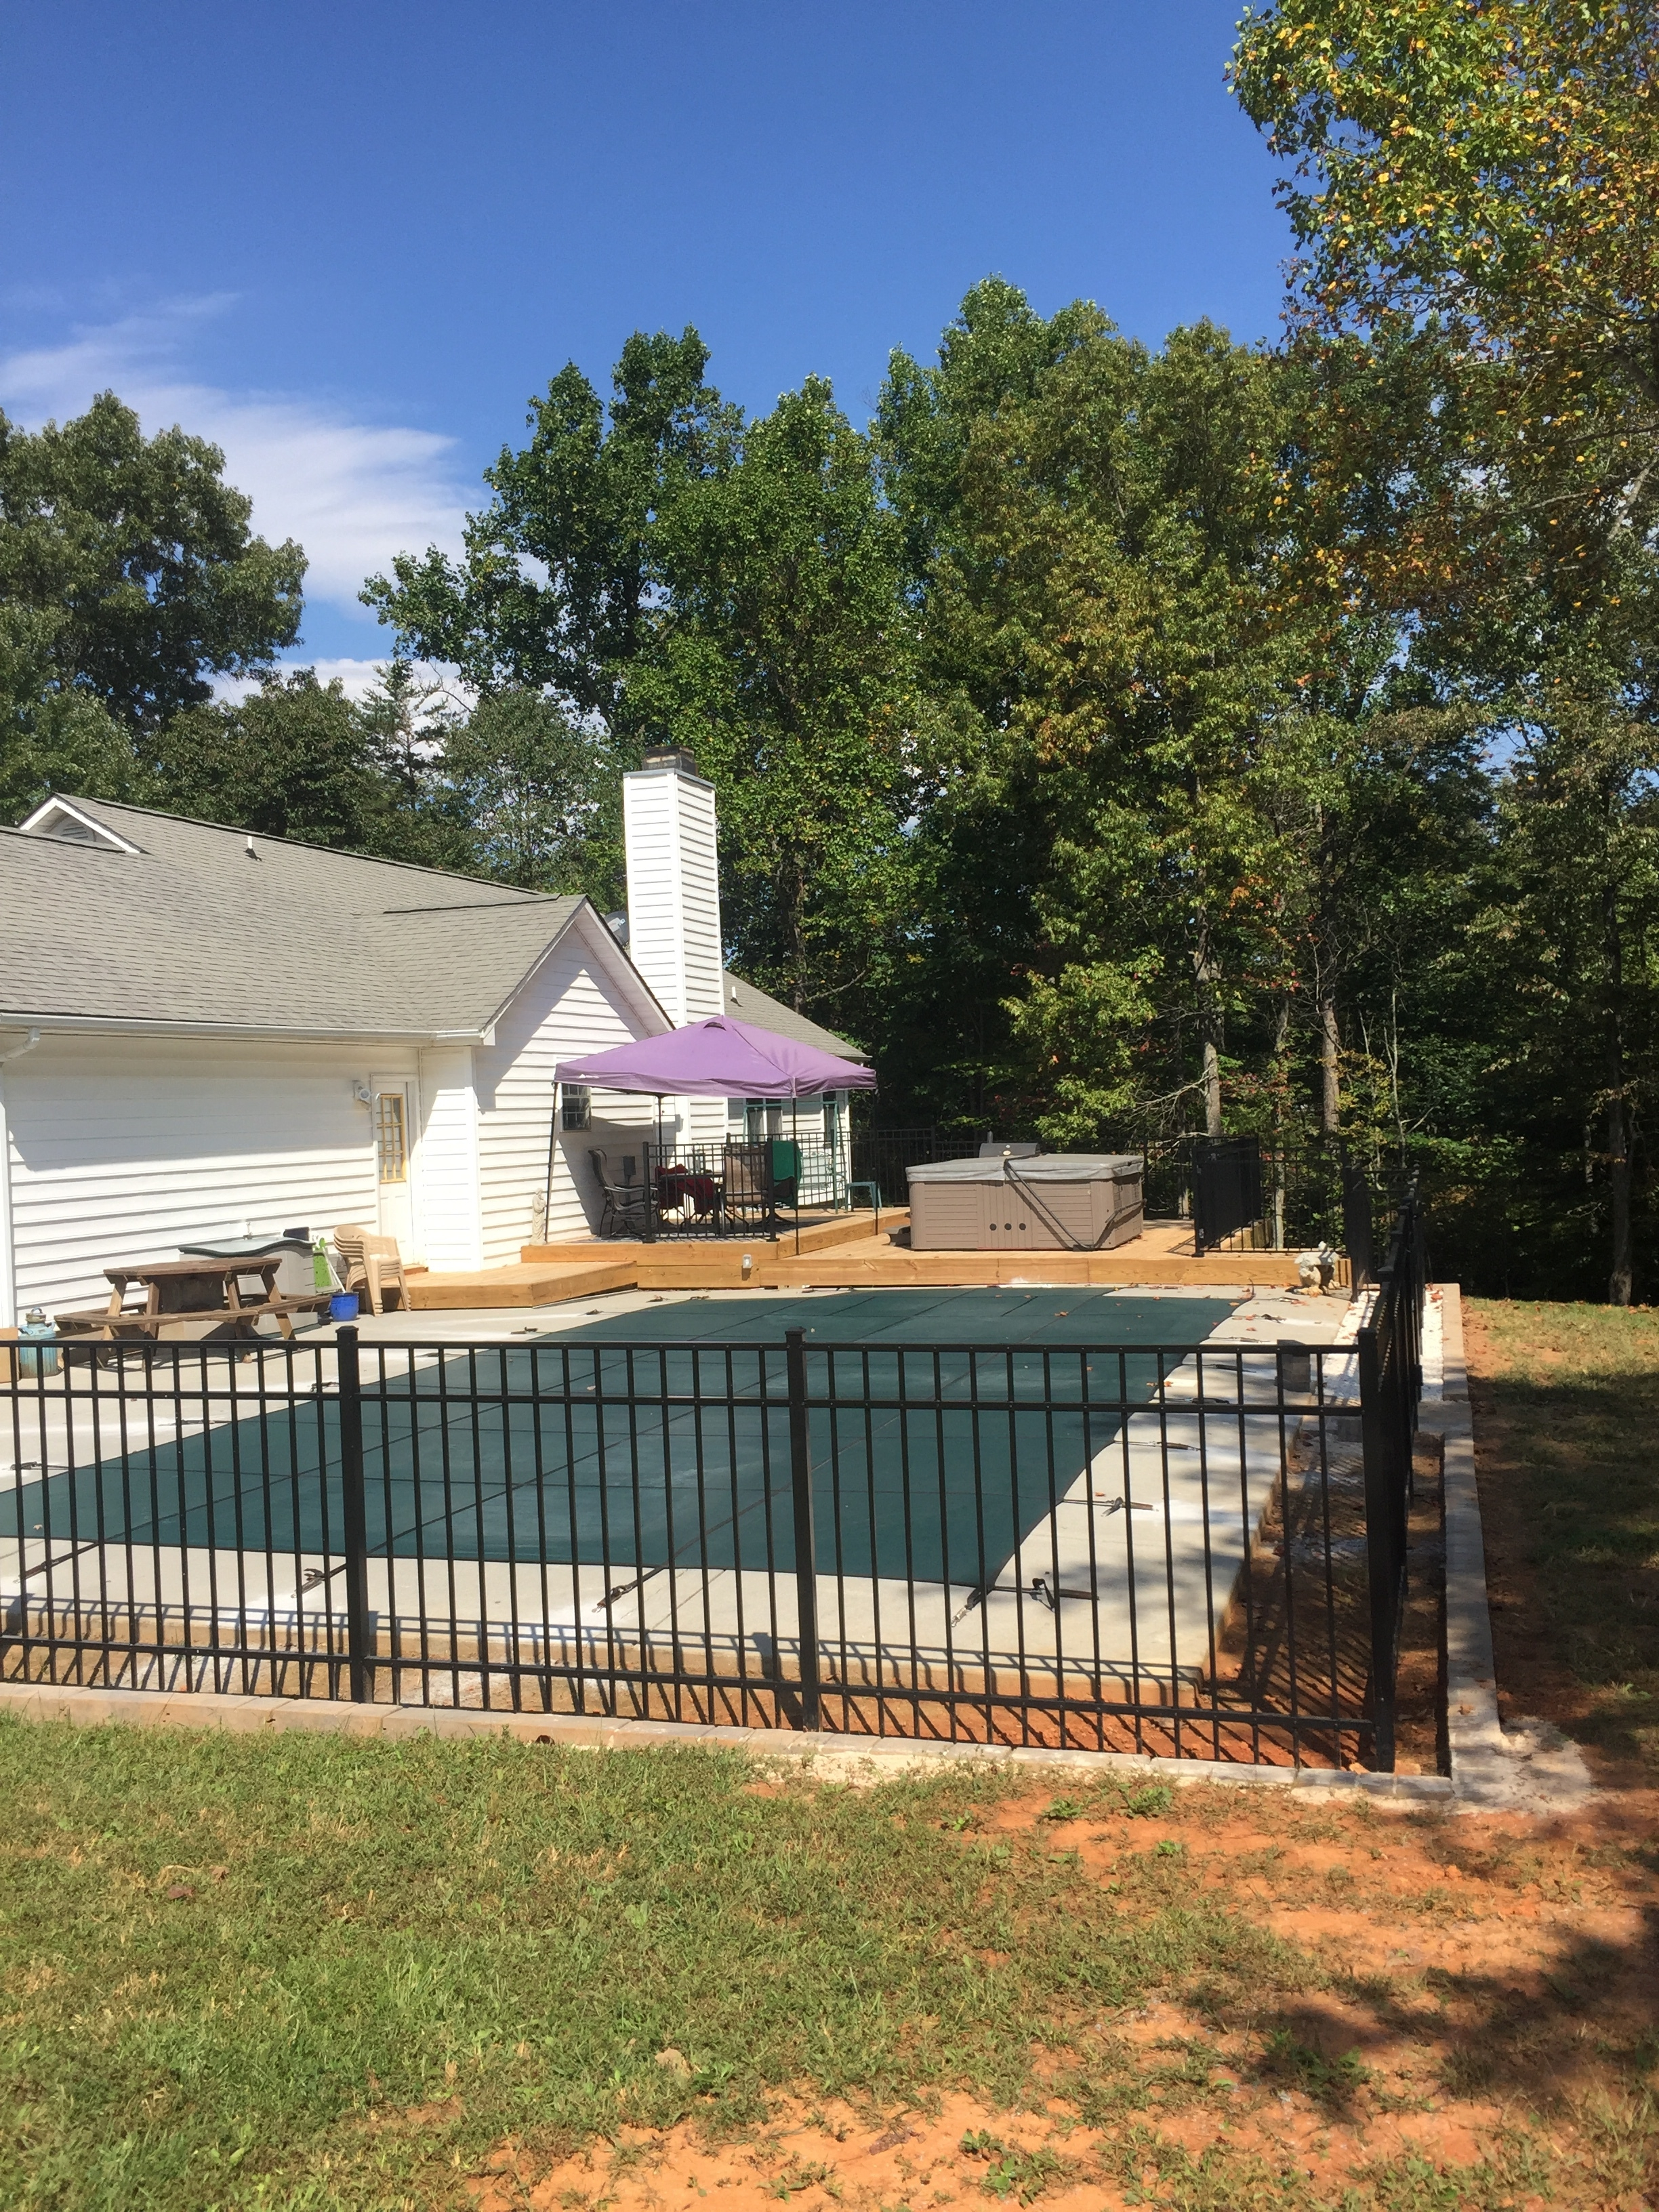 """54"""" 3-rail aluminum fence with 4"""" picket spacing"""